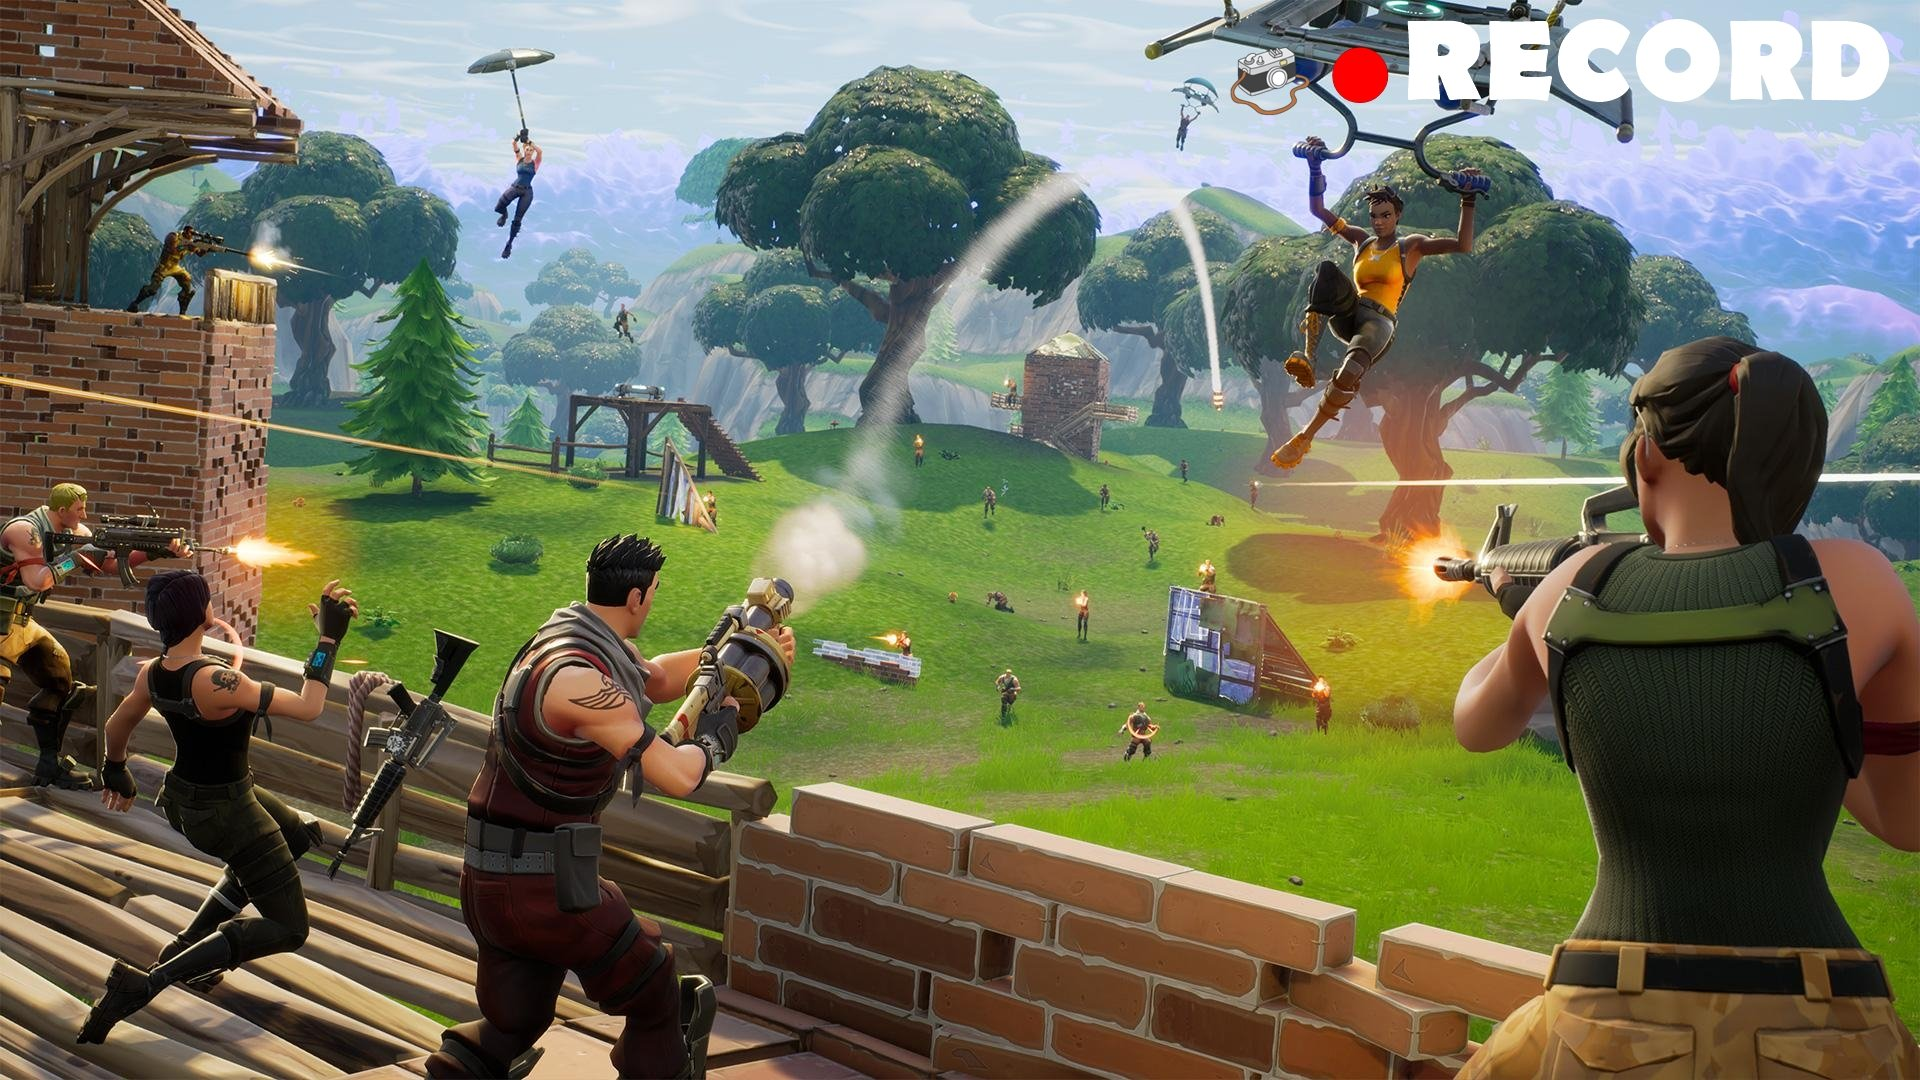 the replay files do not contain video information they contain game data so we cannot directly convert them into mp4 or other video formats - how to upload a fortnite replay to youtube pc